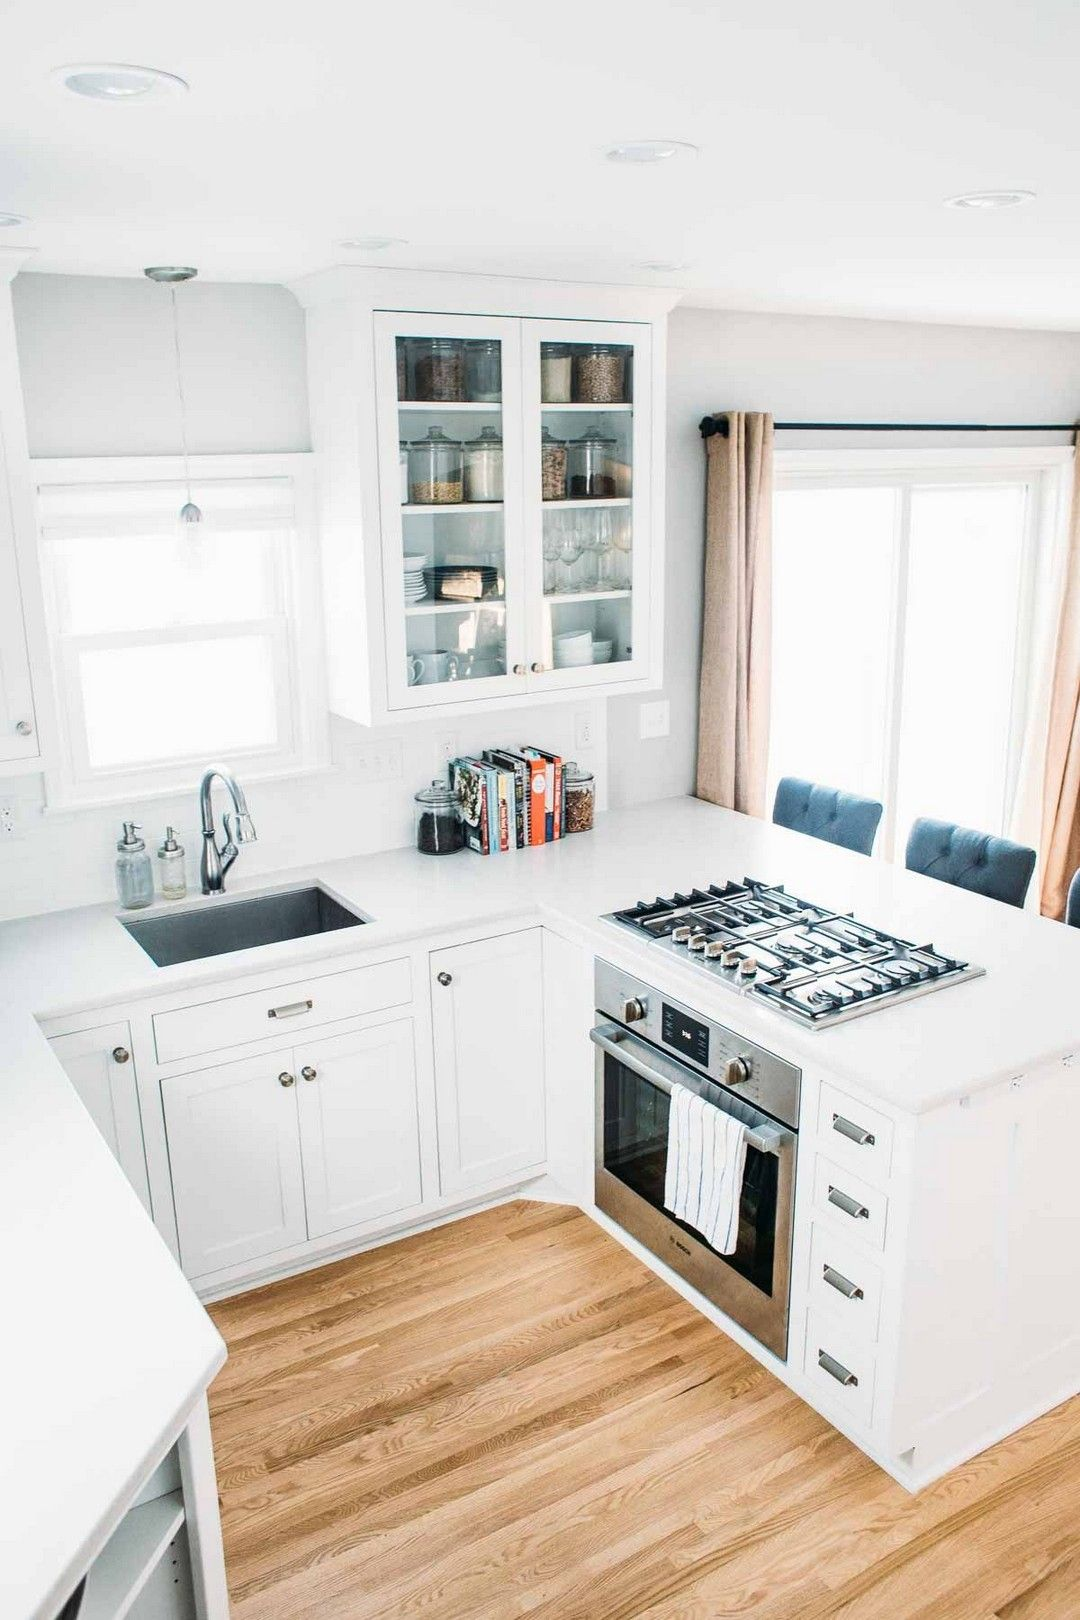 31 Best Small Kitchen Remodeling On Pinterest 11 Kitchendecorpad In 2020 Small Remodel Interior Design Kitchen Kitchen Remodel Small